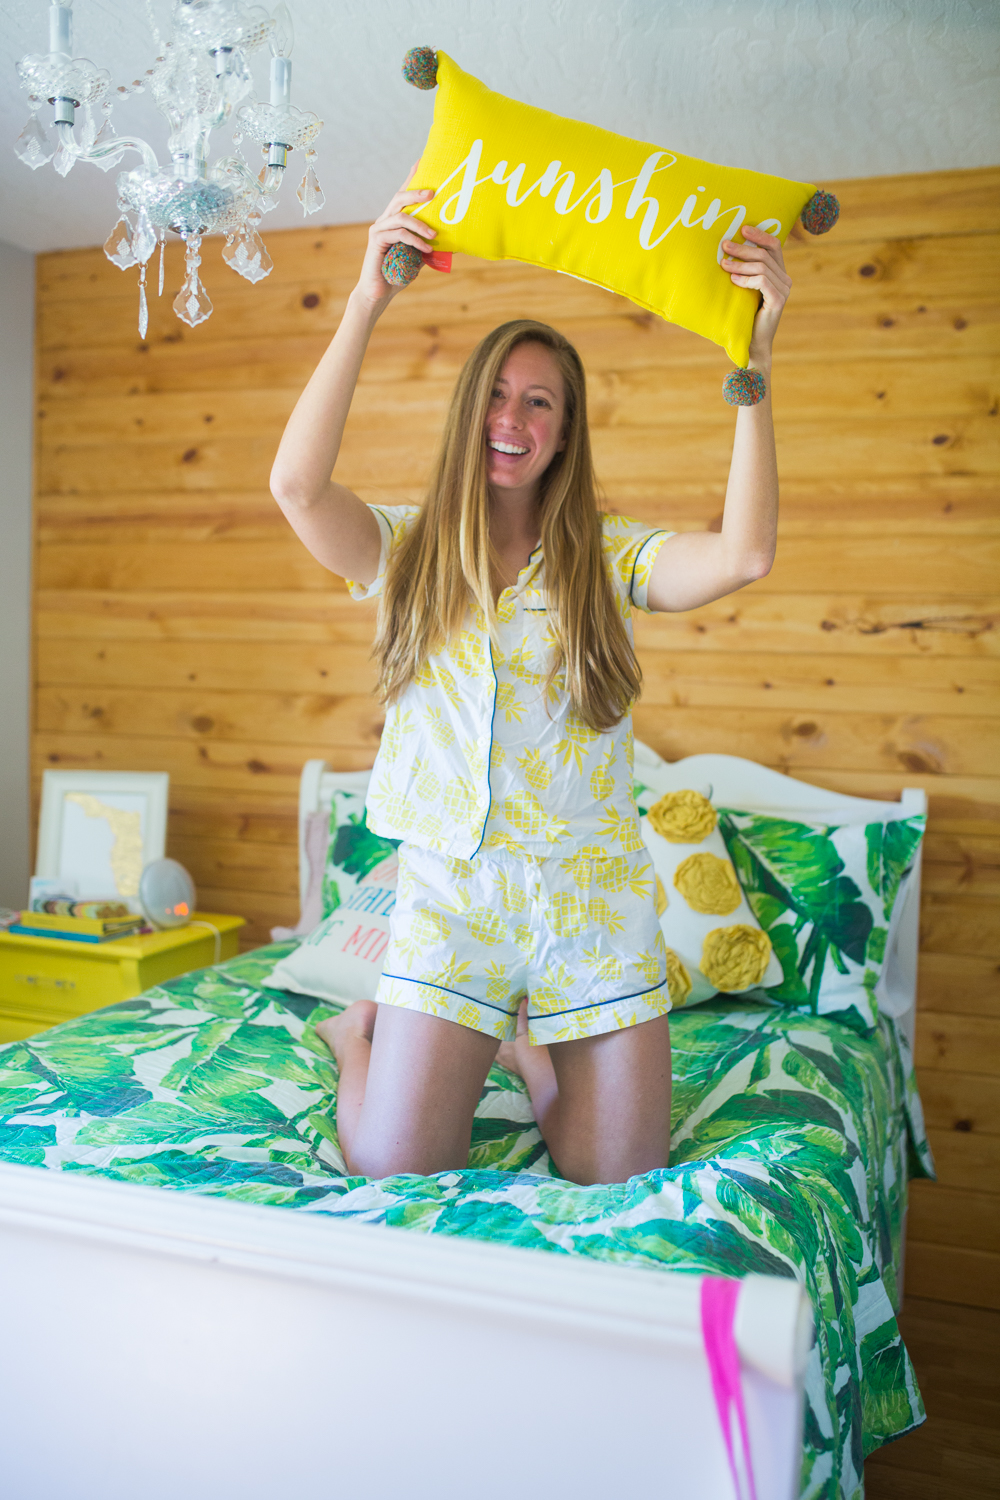 My Simple Morning Routine / How to Create Your Dream Morning Routine / How to Create Your Own Simple Morning Routine / Easy Morning Routine / Productive Morning Routine / Tips for a Productive Morning Routine / Matching Pajama Set / J.Crew Factory Matching Pajamas / Tropical Bedroom Inspiration - Sunshine Style, A Florida Fashion Blog by Katie McCarty